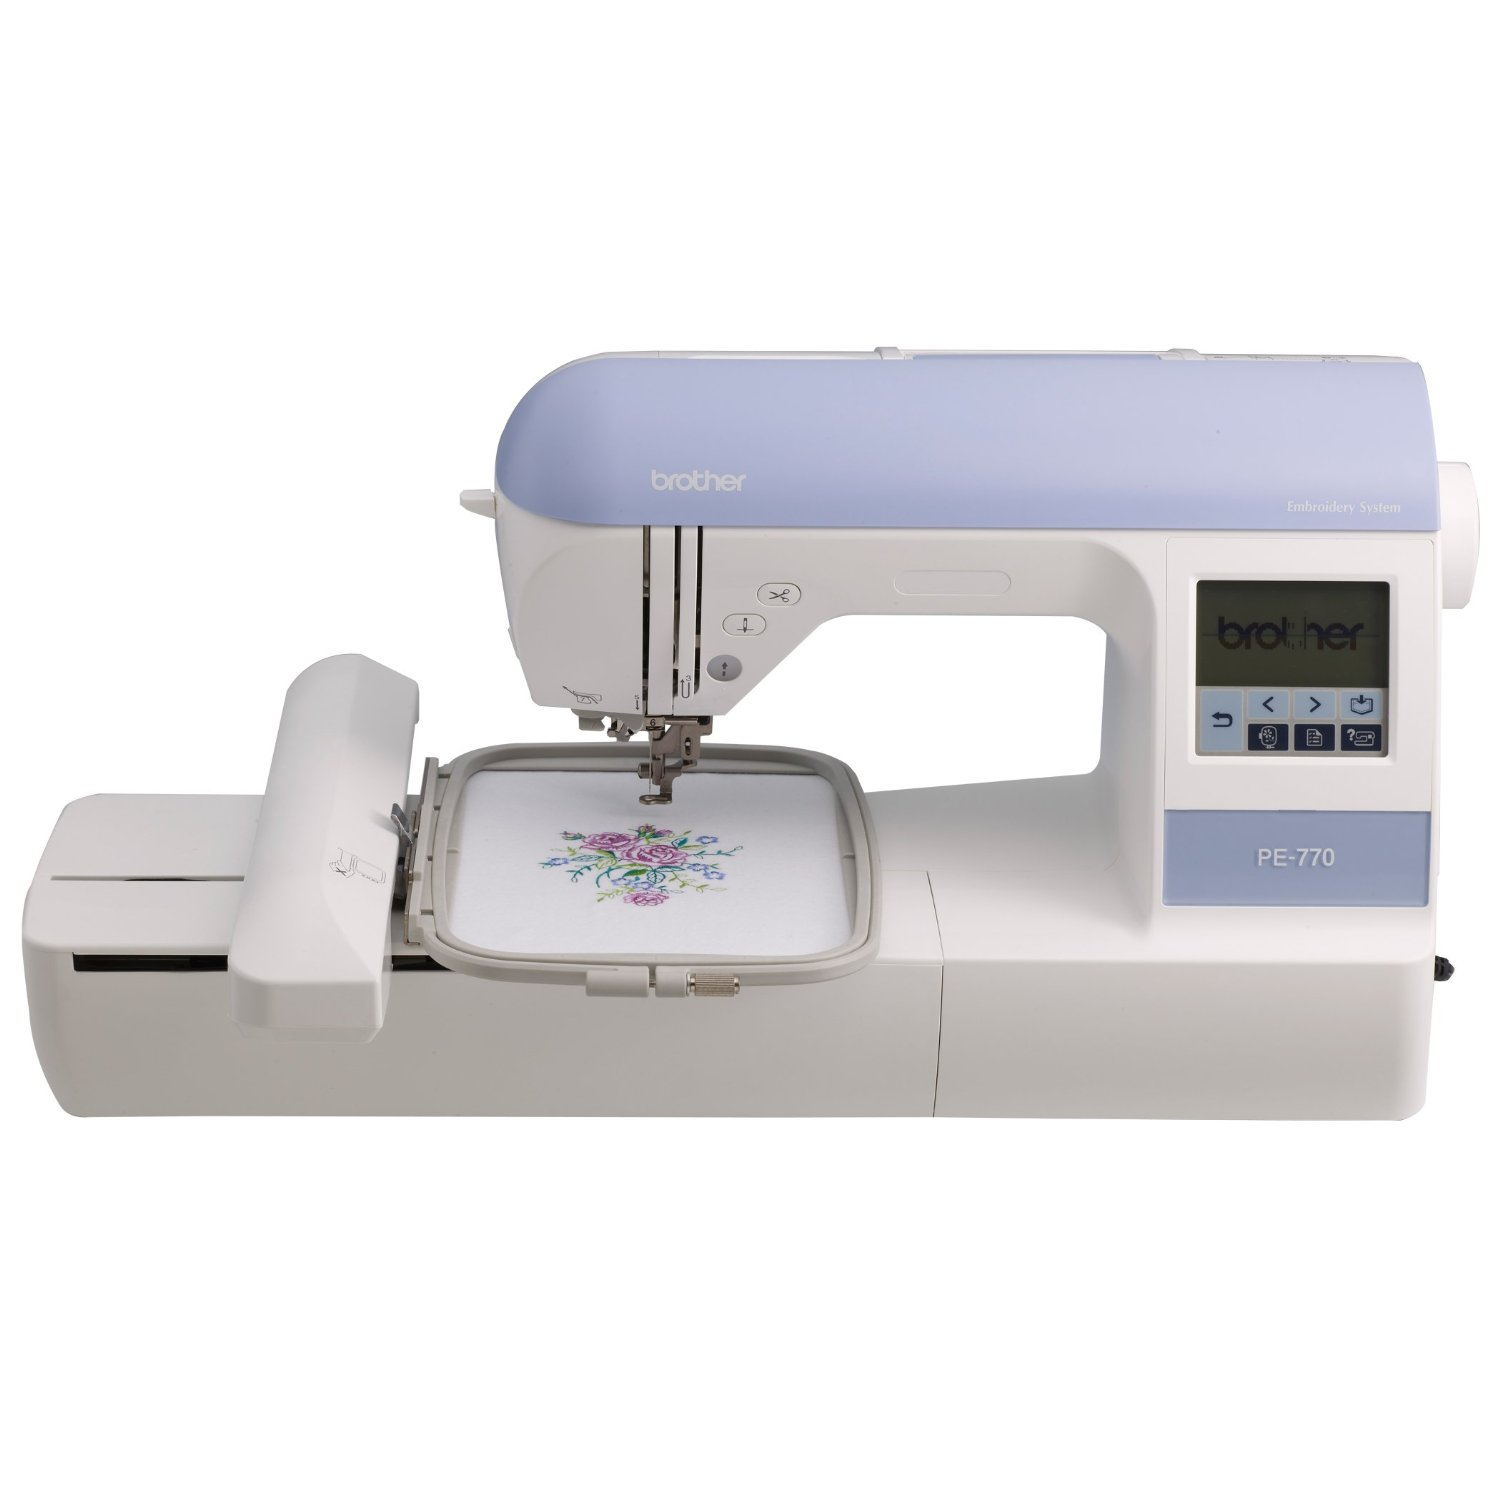 Best Brother Sewing & Embroidery Machine Review: Are you into embroidering? You can try this Brother product anytime for desired results